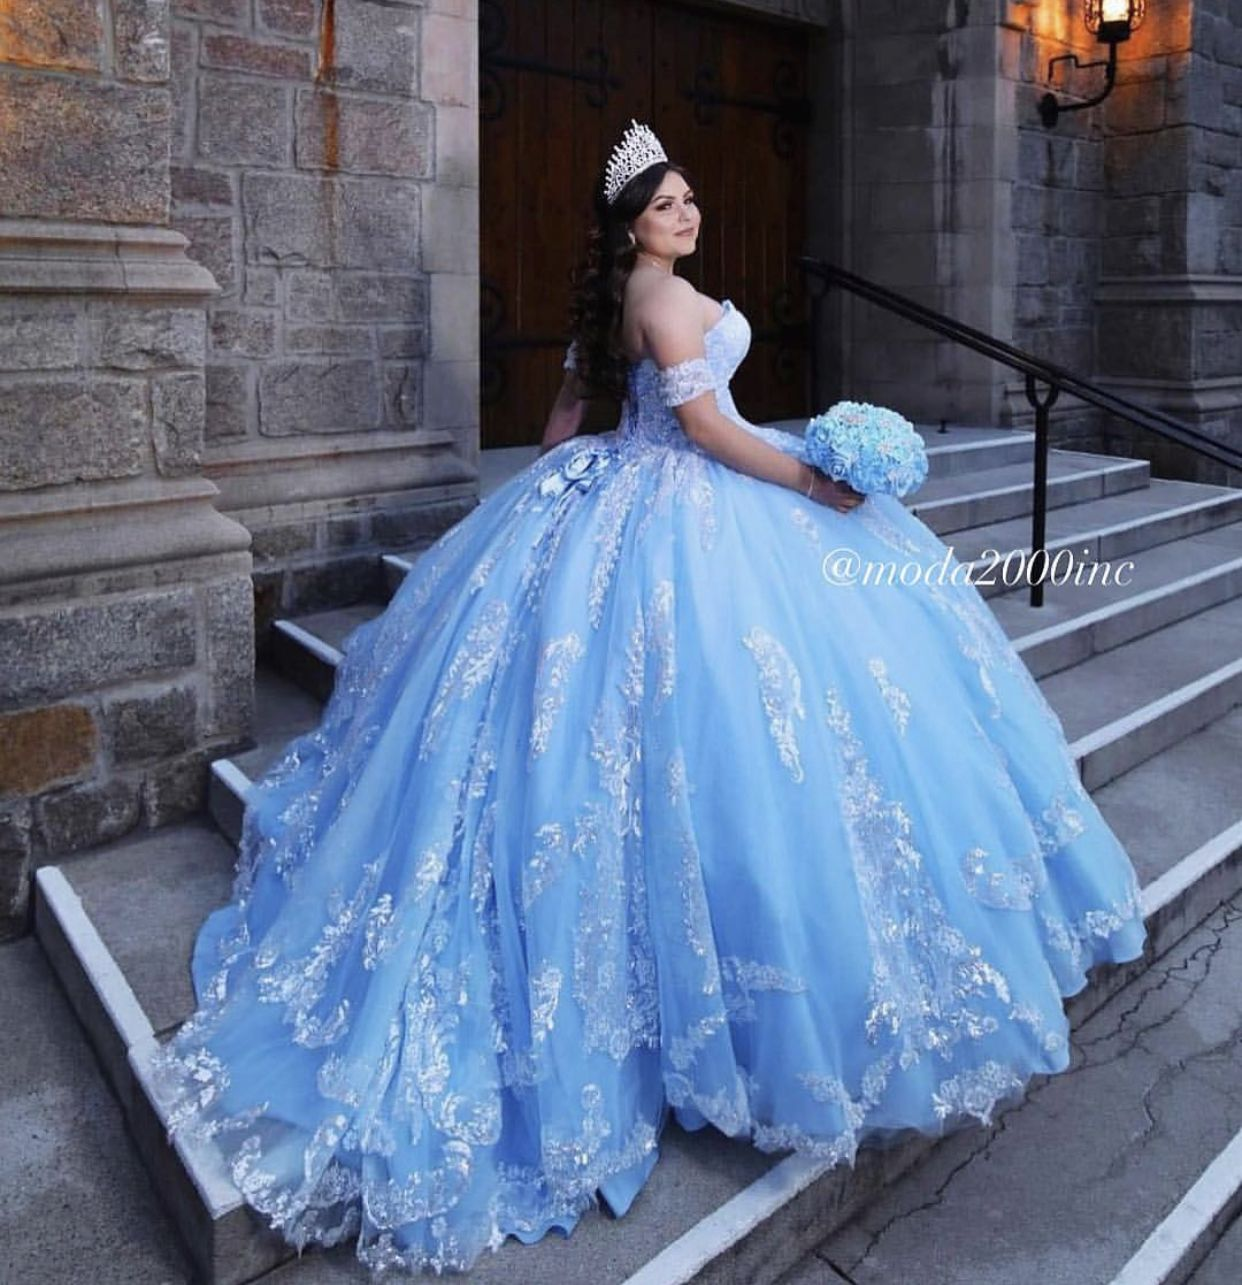 Bahama Blue With Silver Quinceanera Dress Quinceanera Dresses Blue Light Blue Quinceanera Dresses Pretty Quinceanera Dresses [ 1285 x 1242 Pixel ]